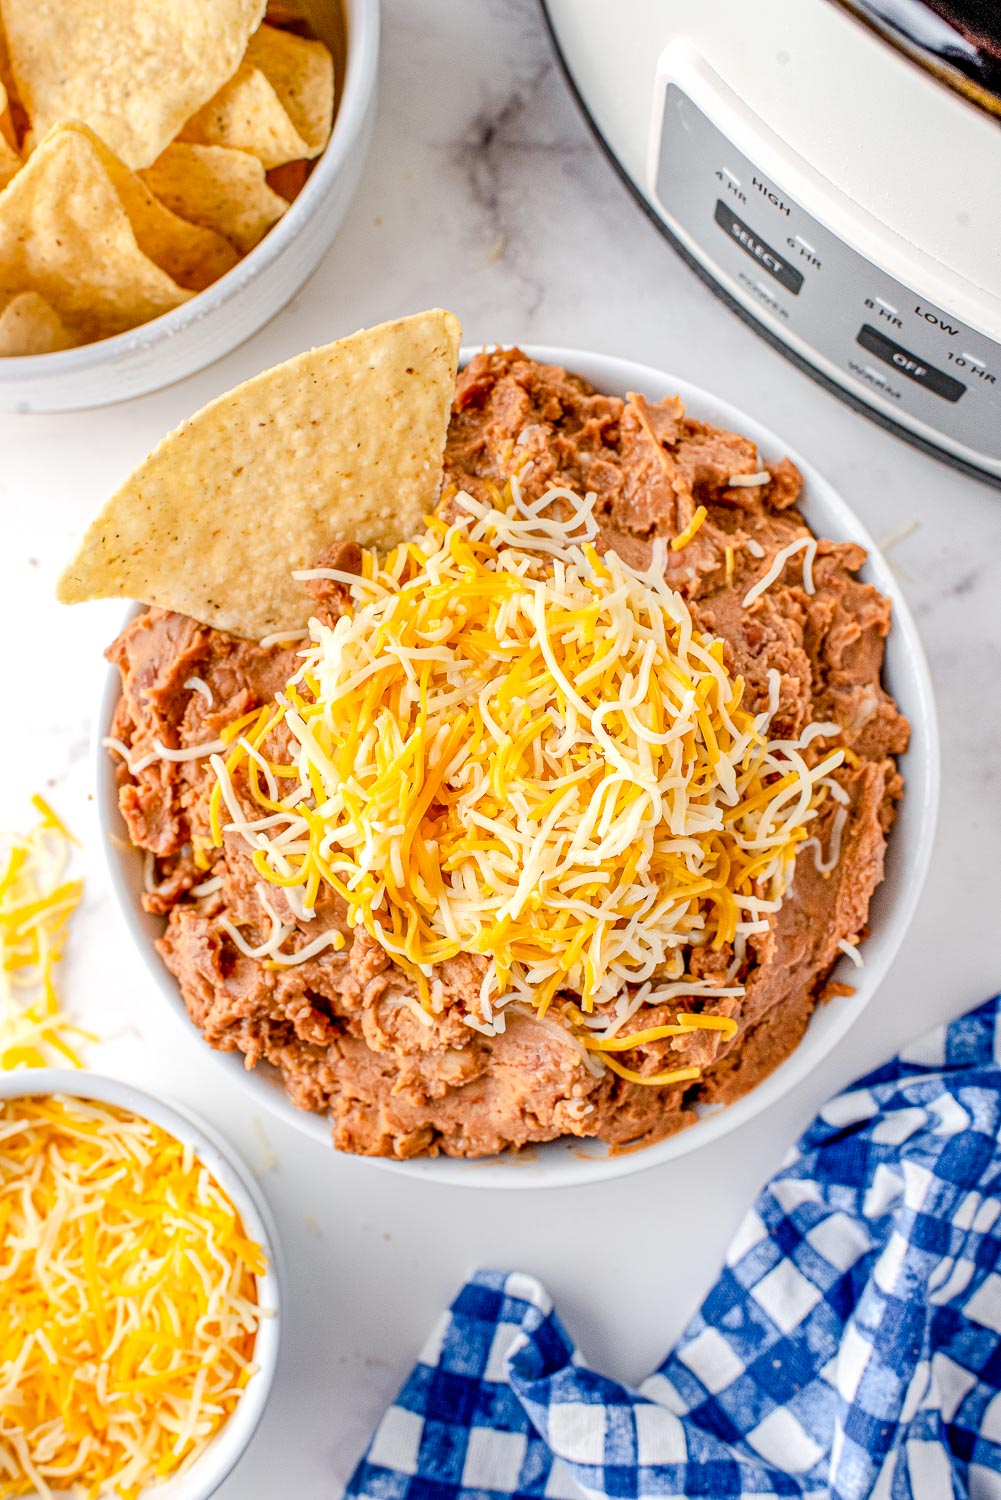 An overhead picture of the finished Mexican Refried Beans in a white bowl that's garnished with shredded Mexican cheese and tortilla chips.